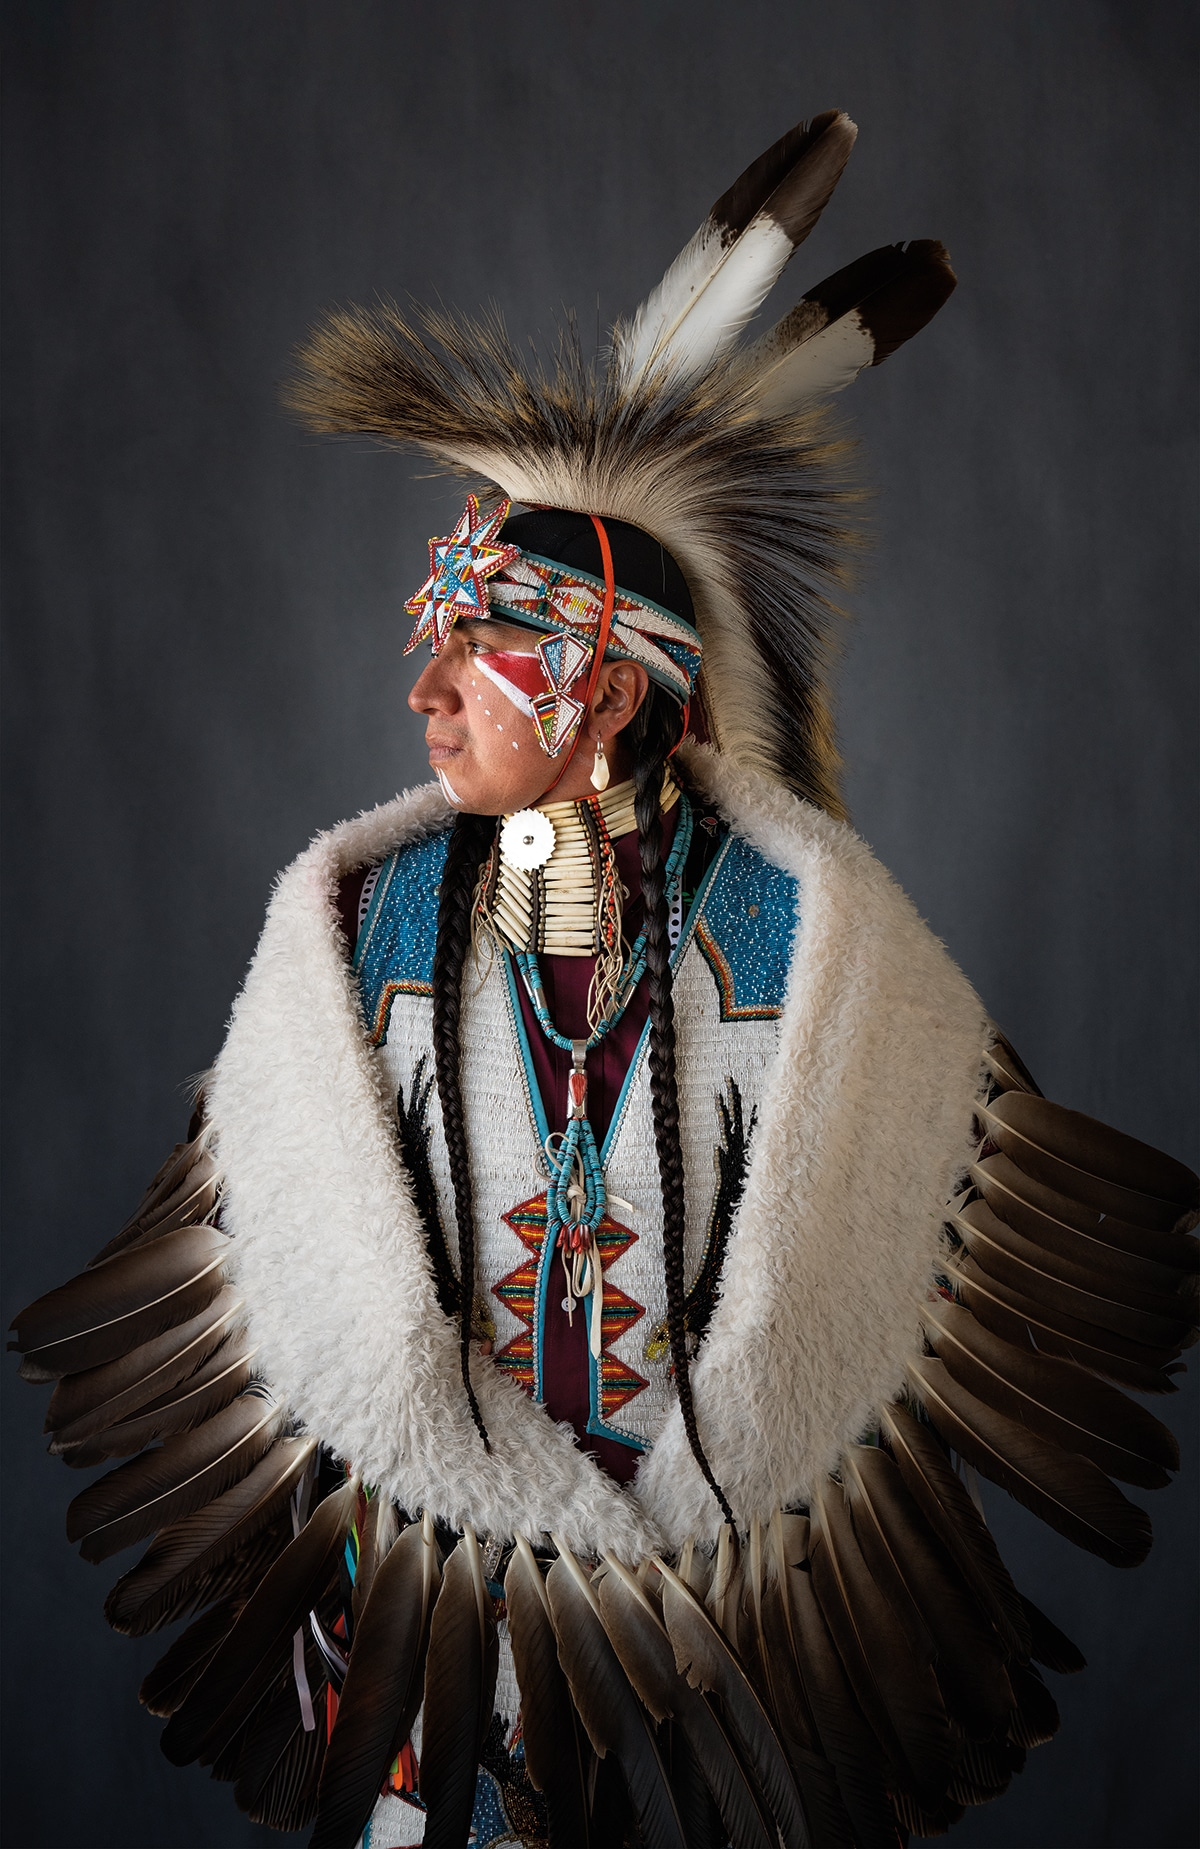 Native American Man Photographed in Traditional Dress